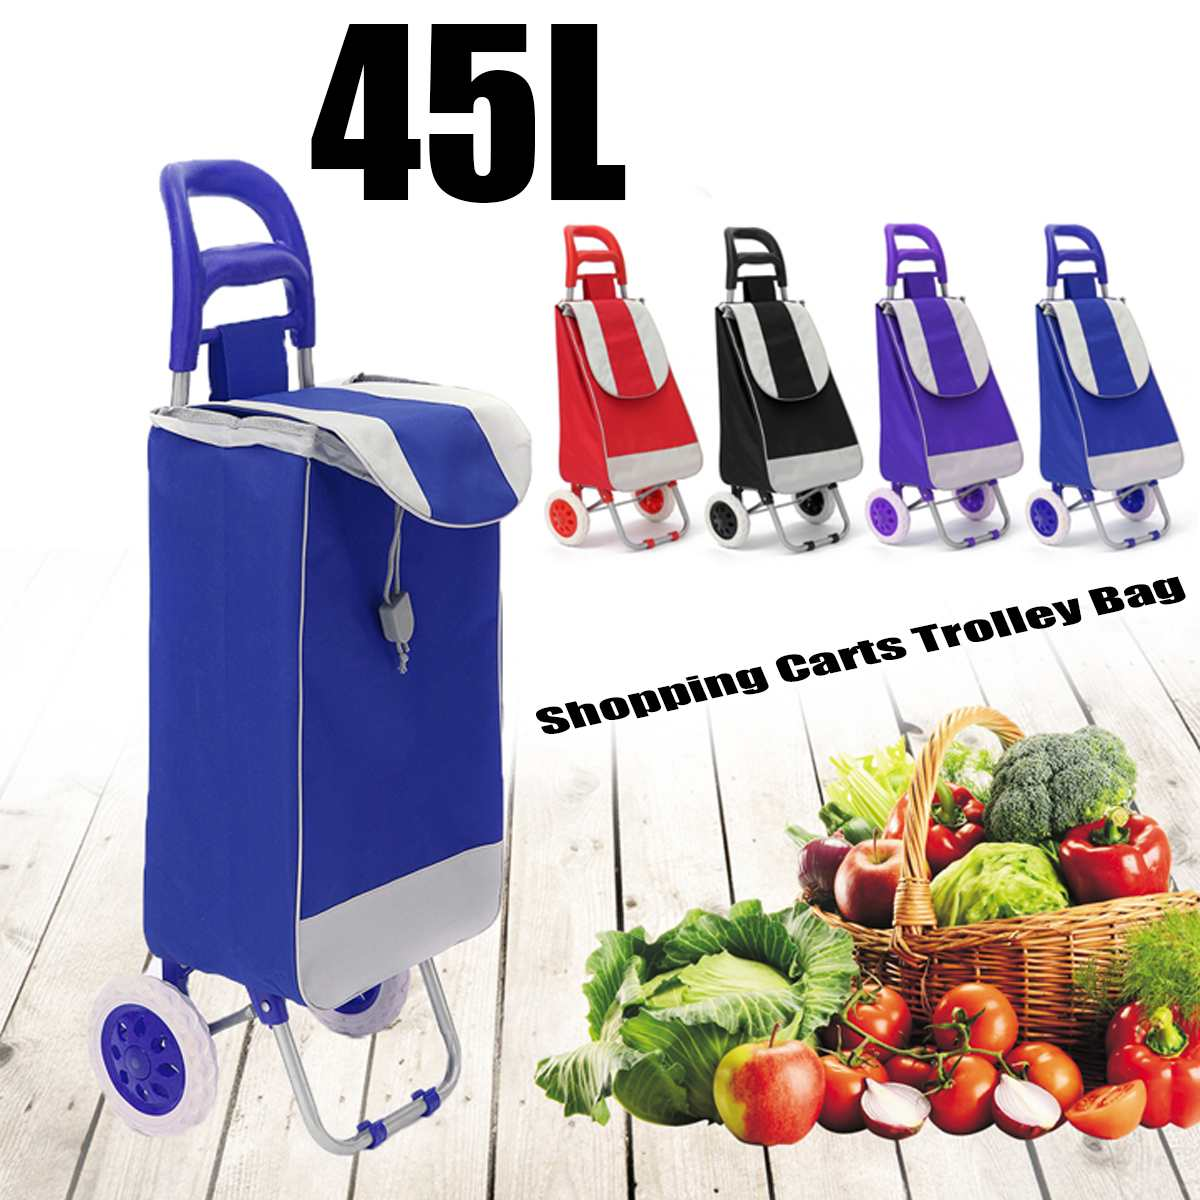 45L Foldable Shopping Trolley Bag On Wheels Push Tote